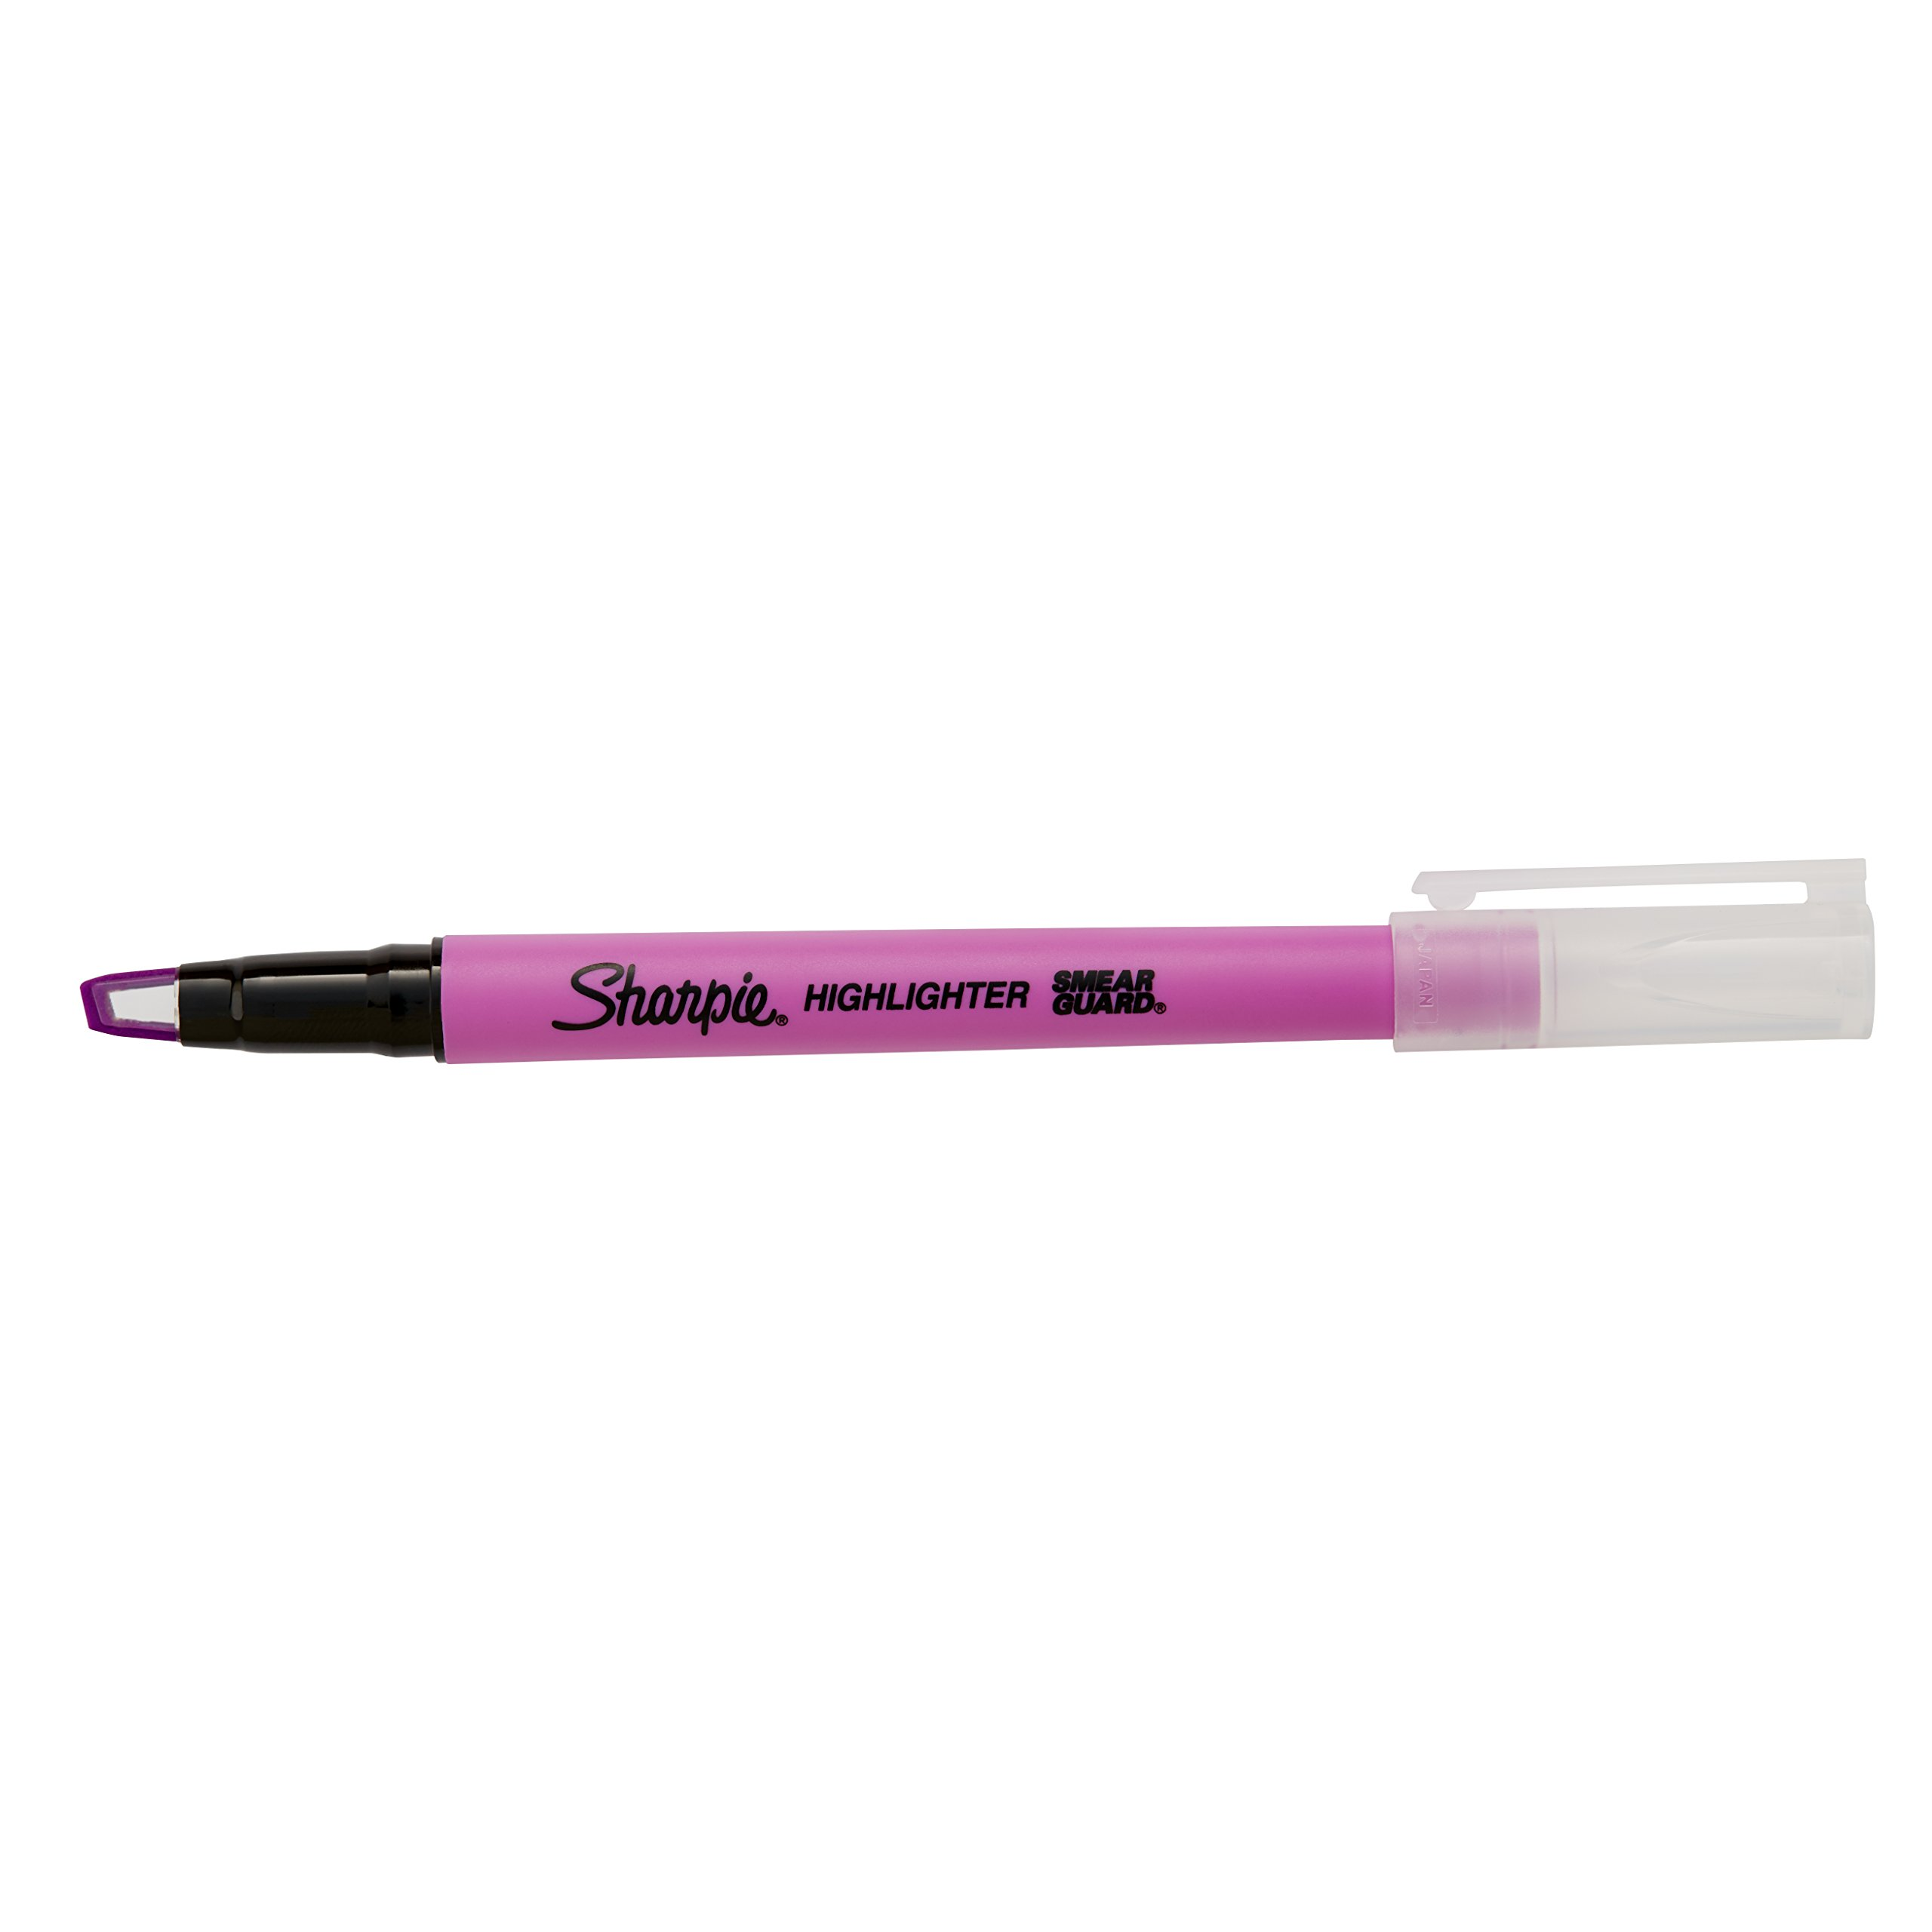 Sharpie Clear View Highlighter Stick, Chisel Tip, Assorted Fluorescent, 36 Count by Sharpie (Image #5)